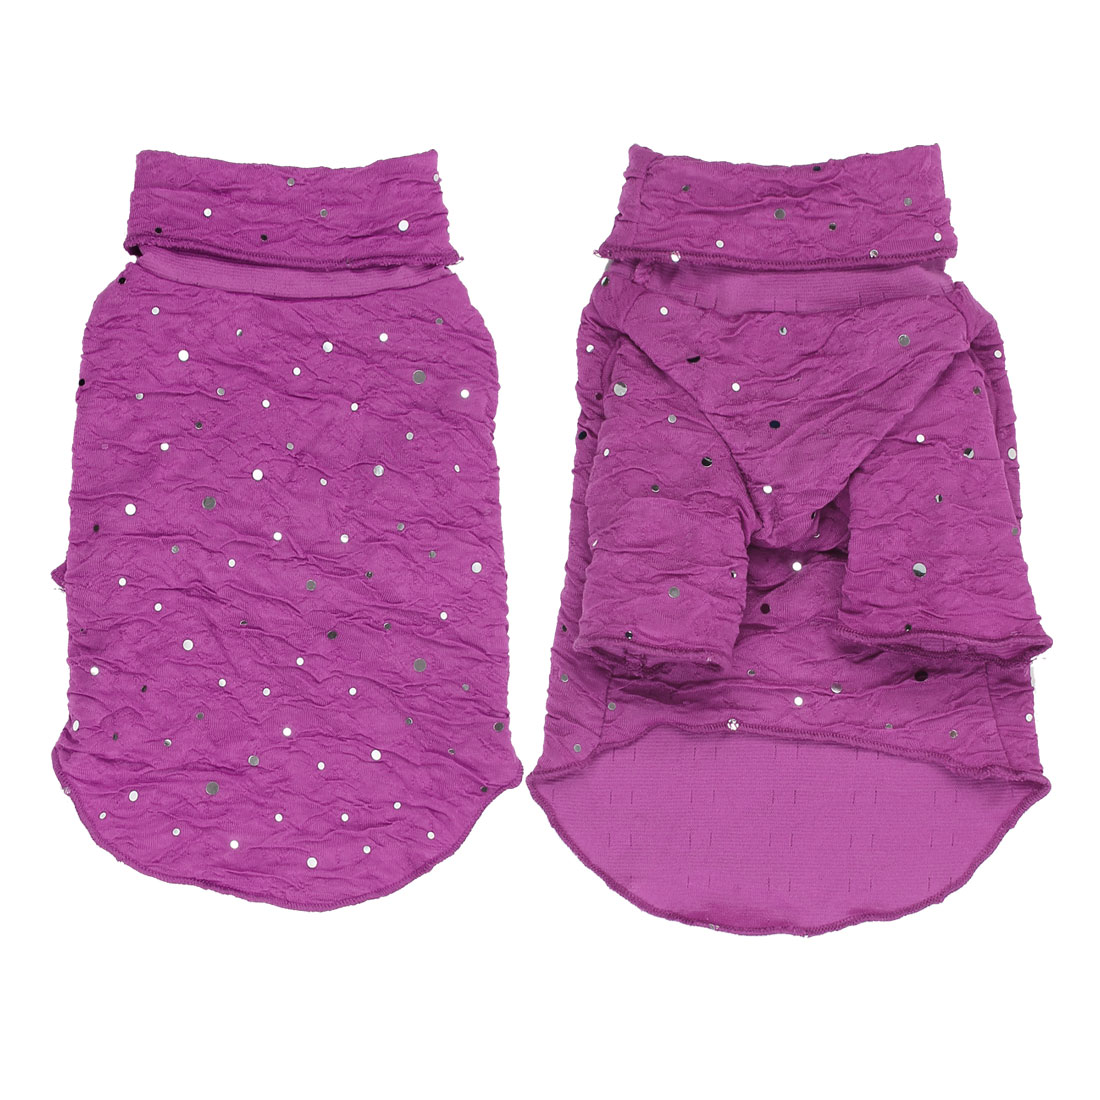 Pet Dog Puppy Turtleneck Sequins Clothes Clothing Apparel Costume Purple Size L